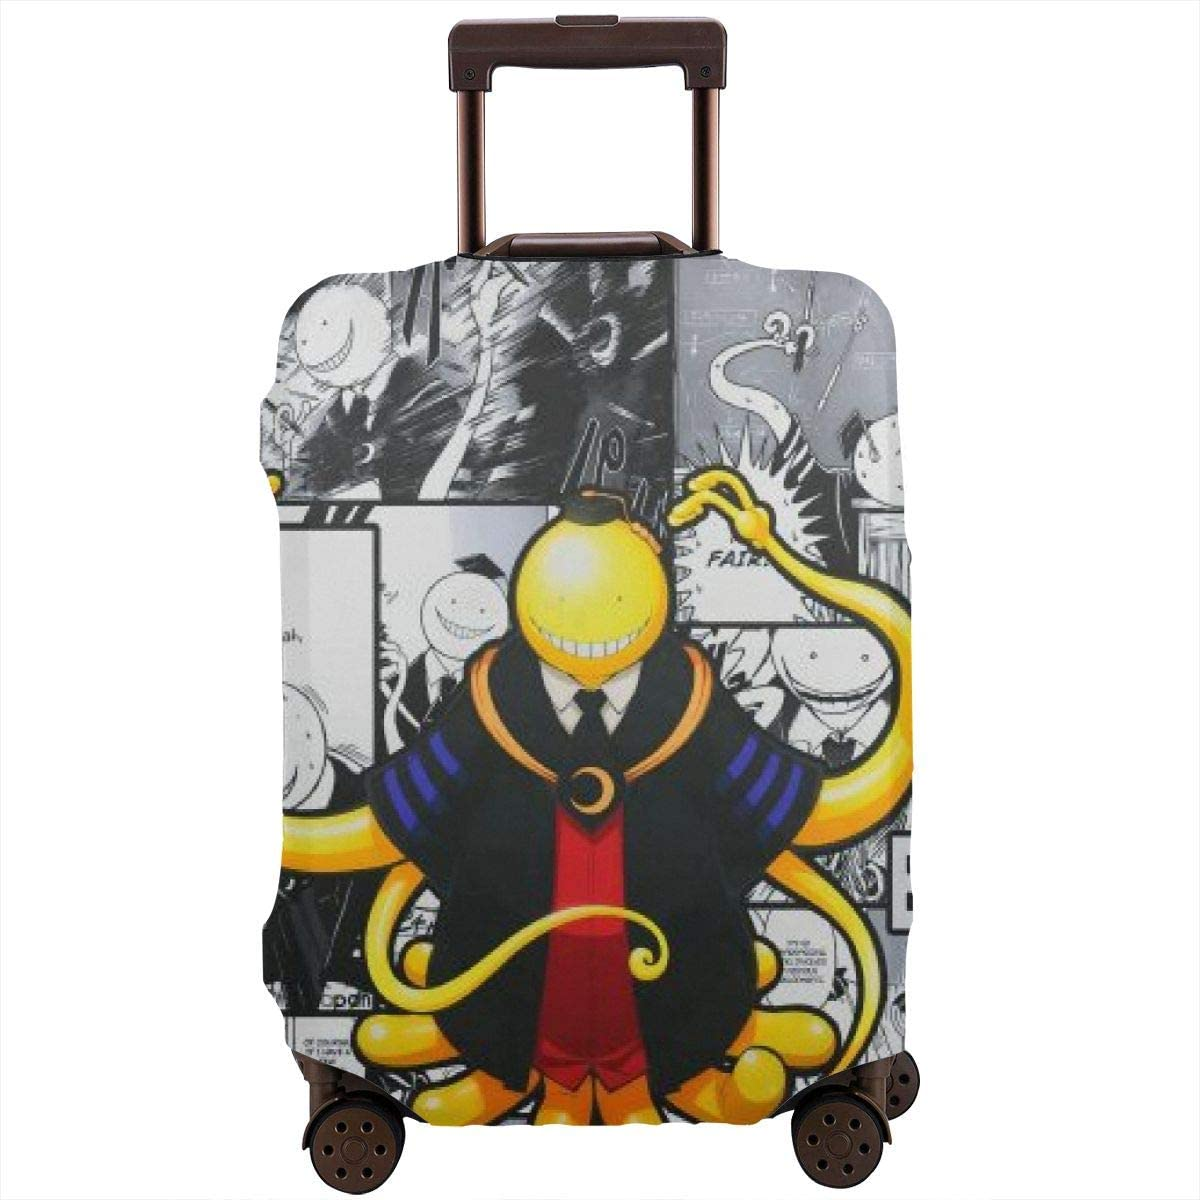 Assassination Classroom-Korosensei Anime Cartoon Suitcase Protector Cool Travel Luggage Protector Unique Print Baggage Suitcase Cover Fit L(25-28 Inch Luggage)